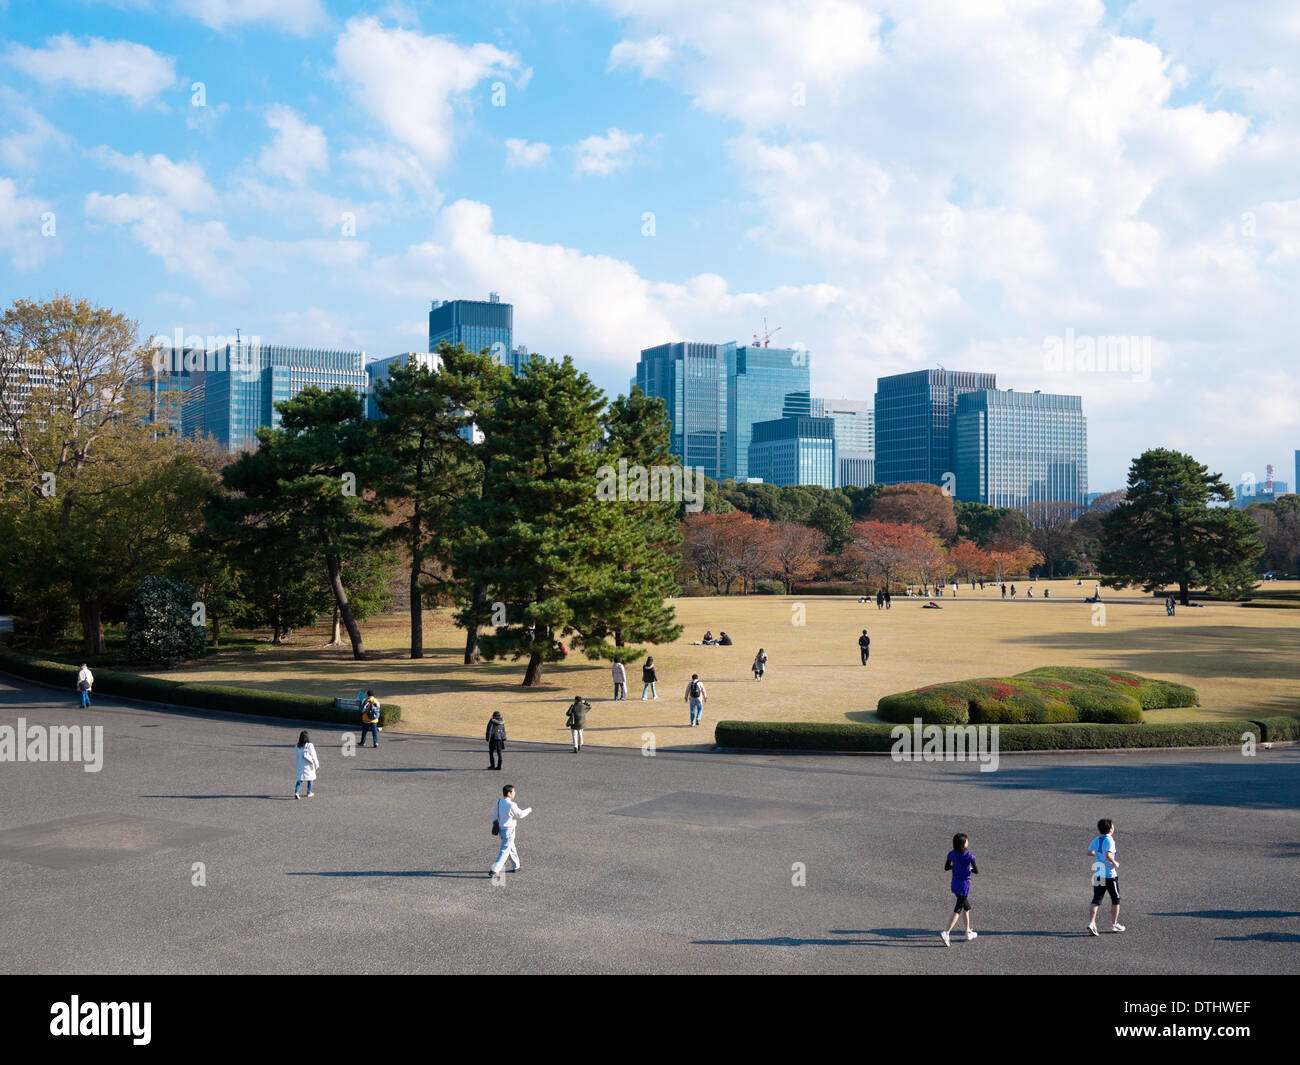 A view of the East Gardens of the Tokyo Imperial Palace in Tokyo, Japan. Stock Photo